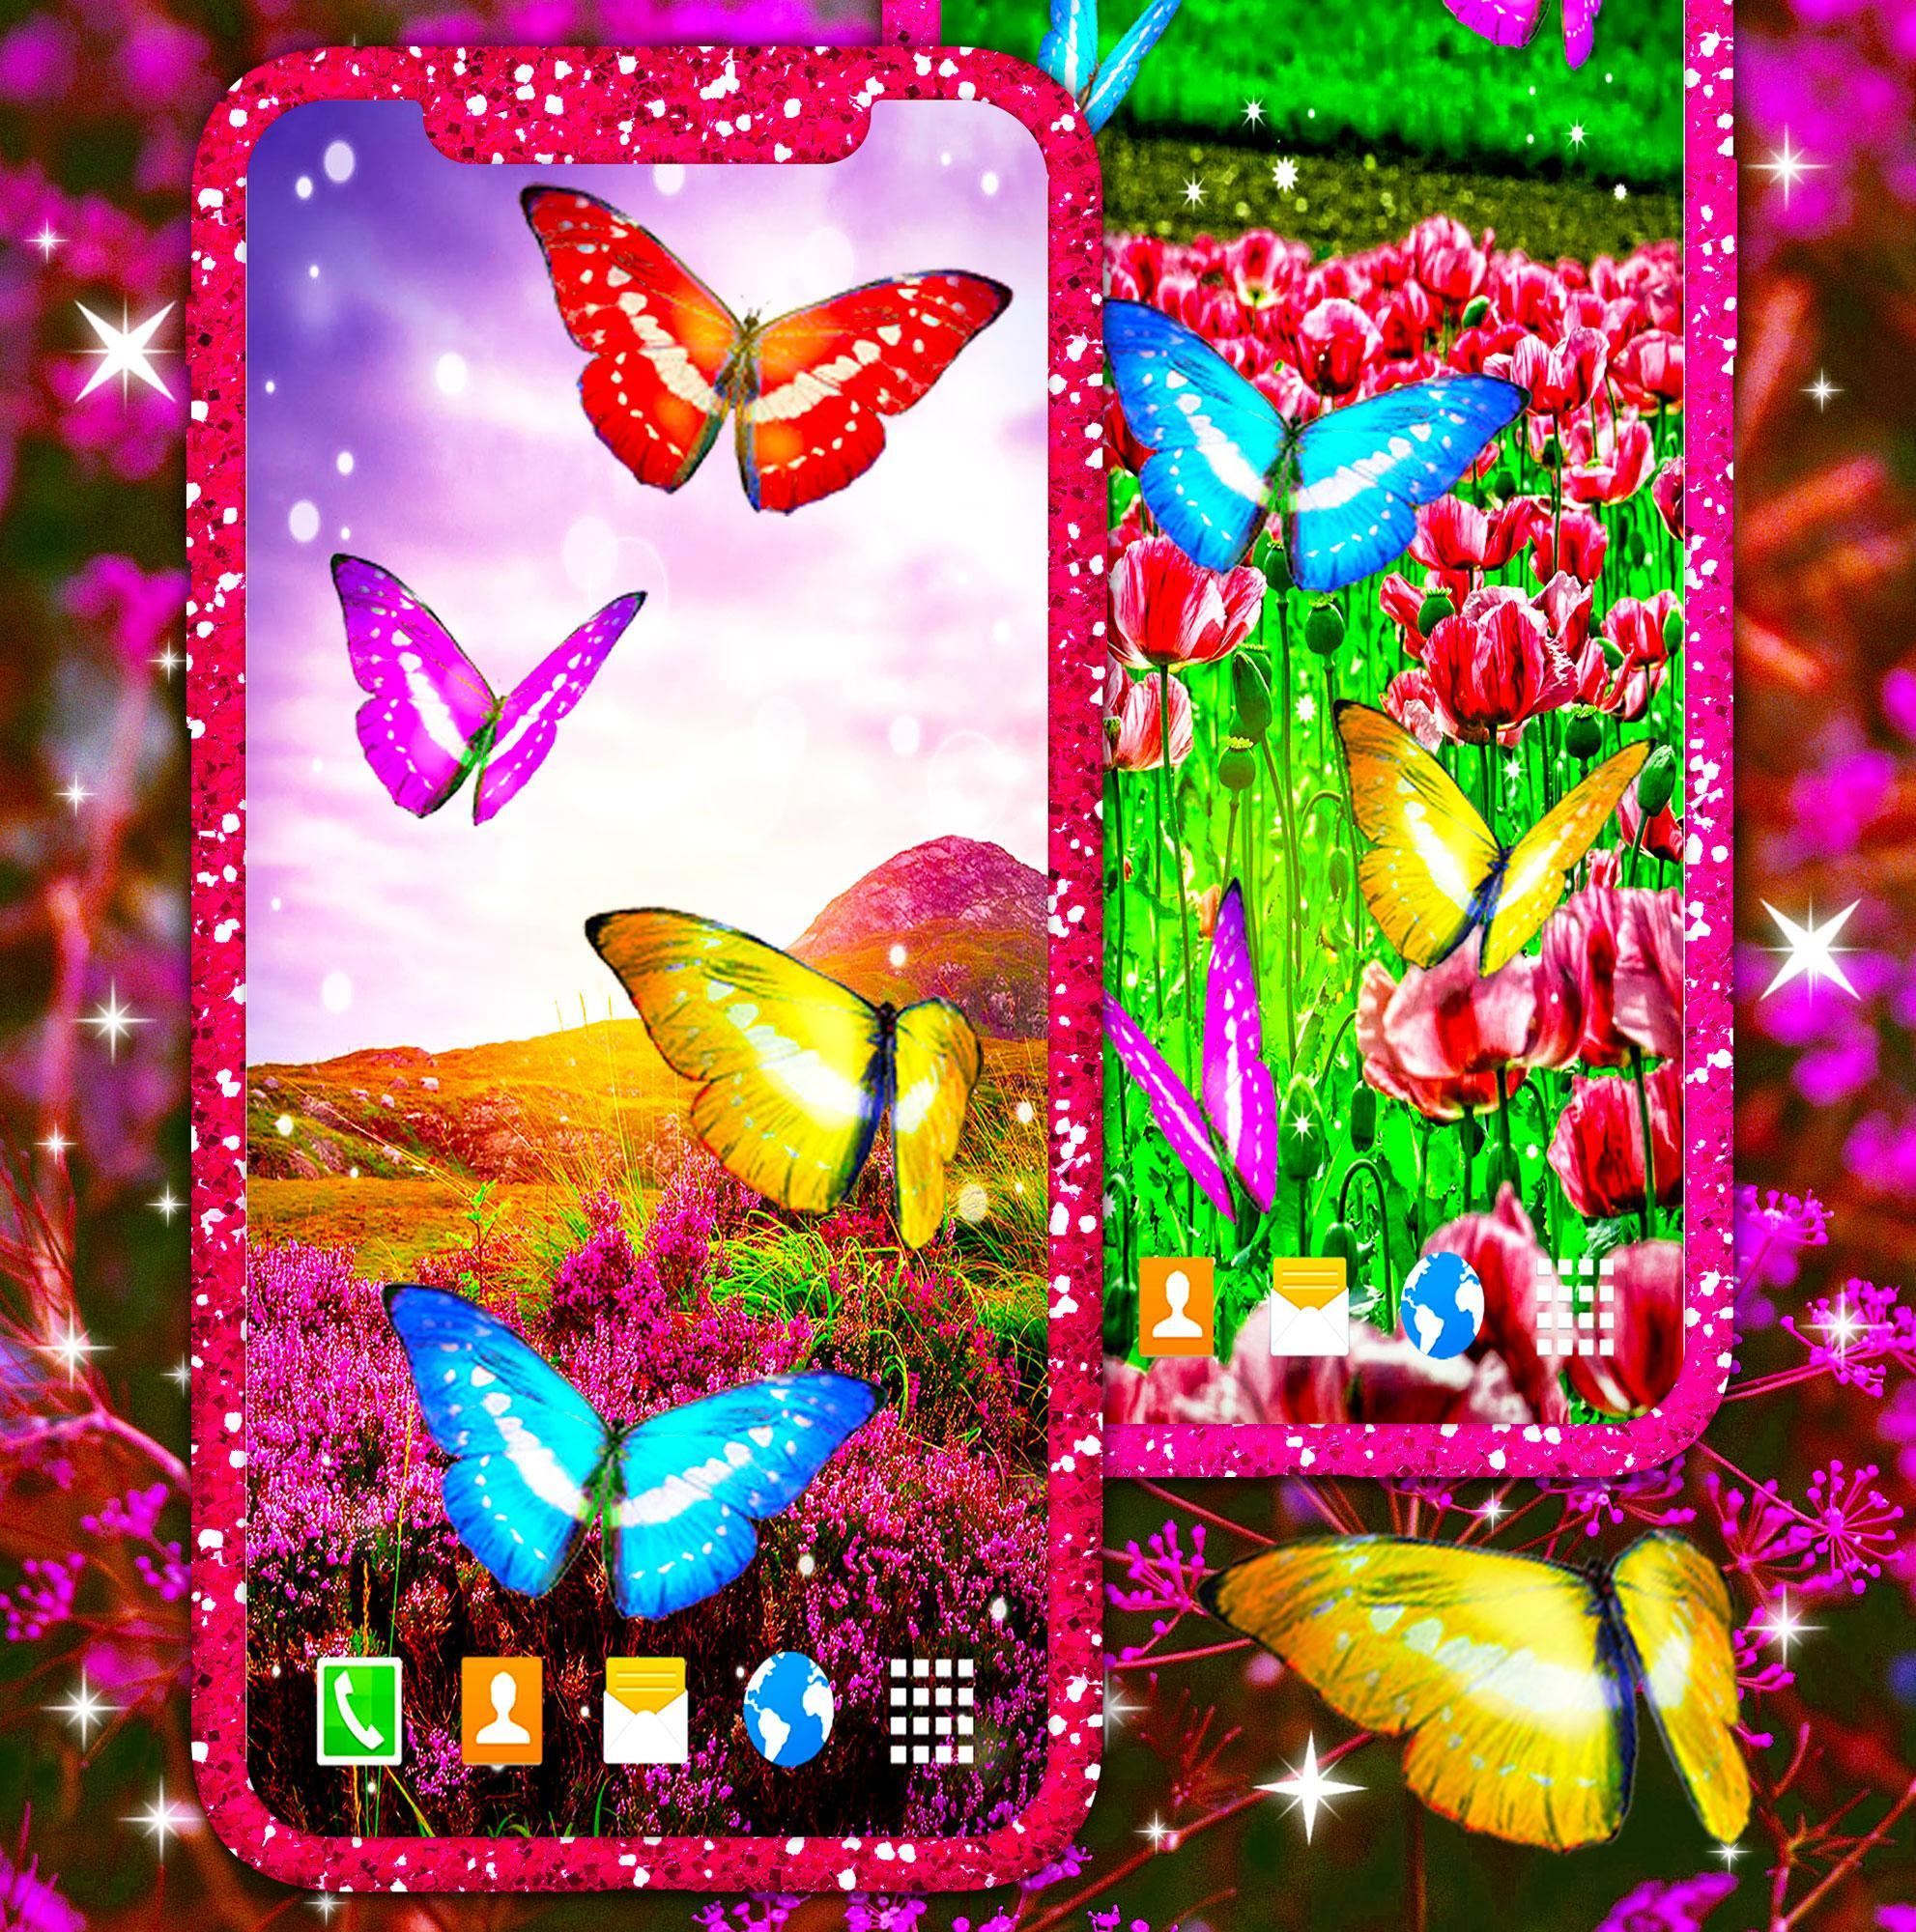 Best Magic Butterfly Flowers Hd Live Wallpaper For